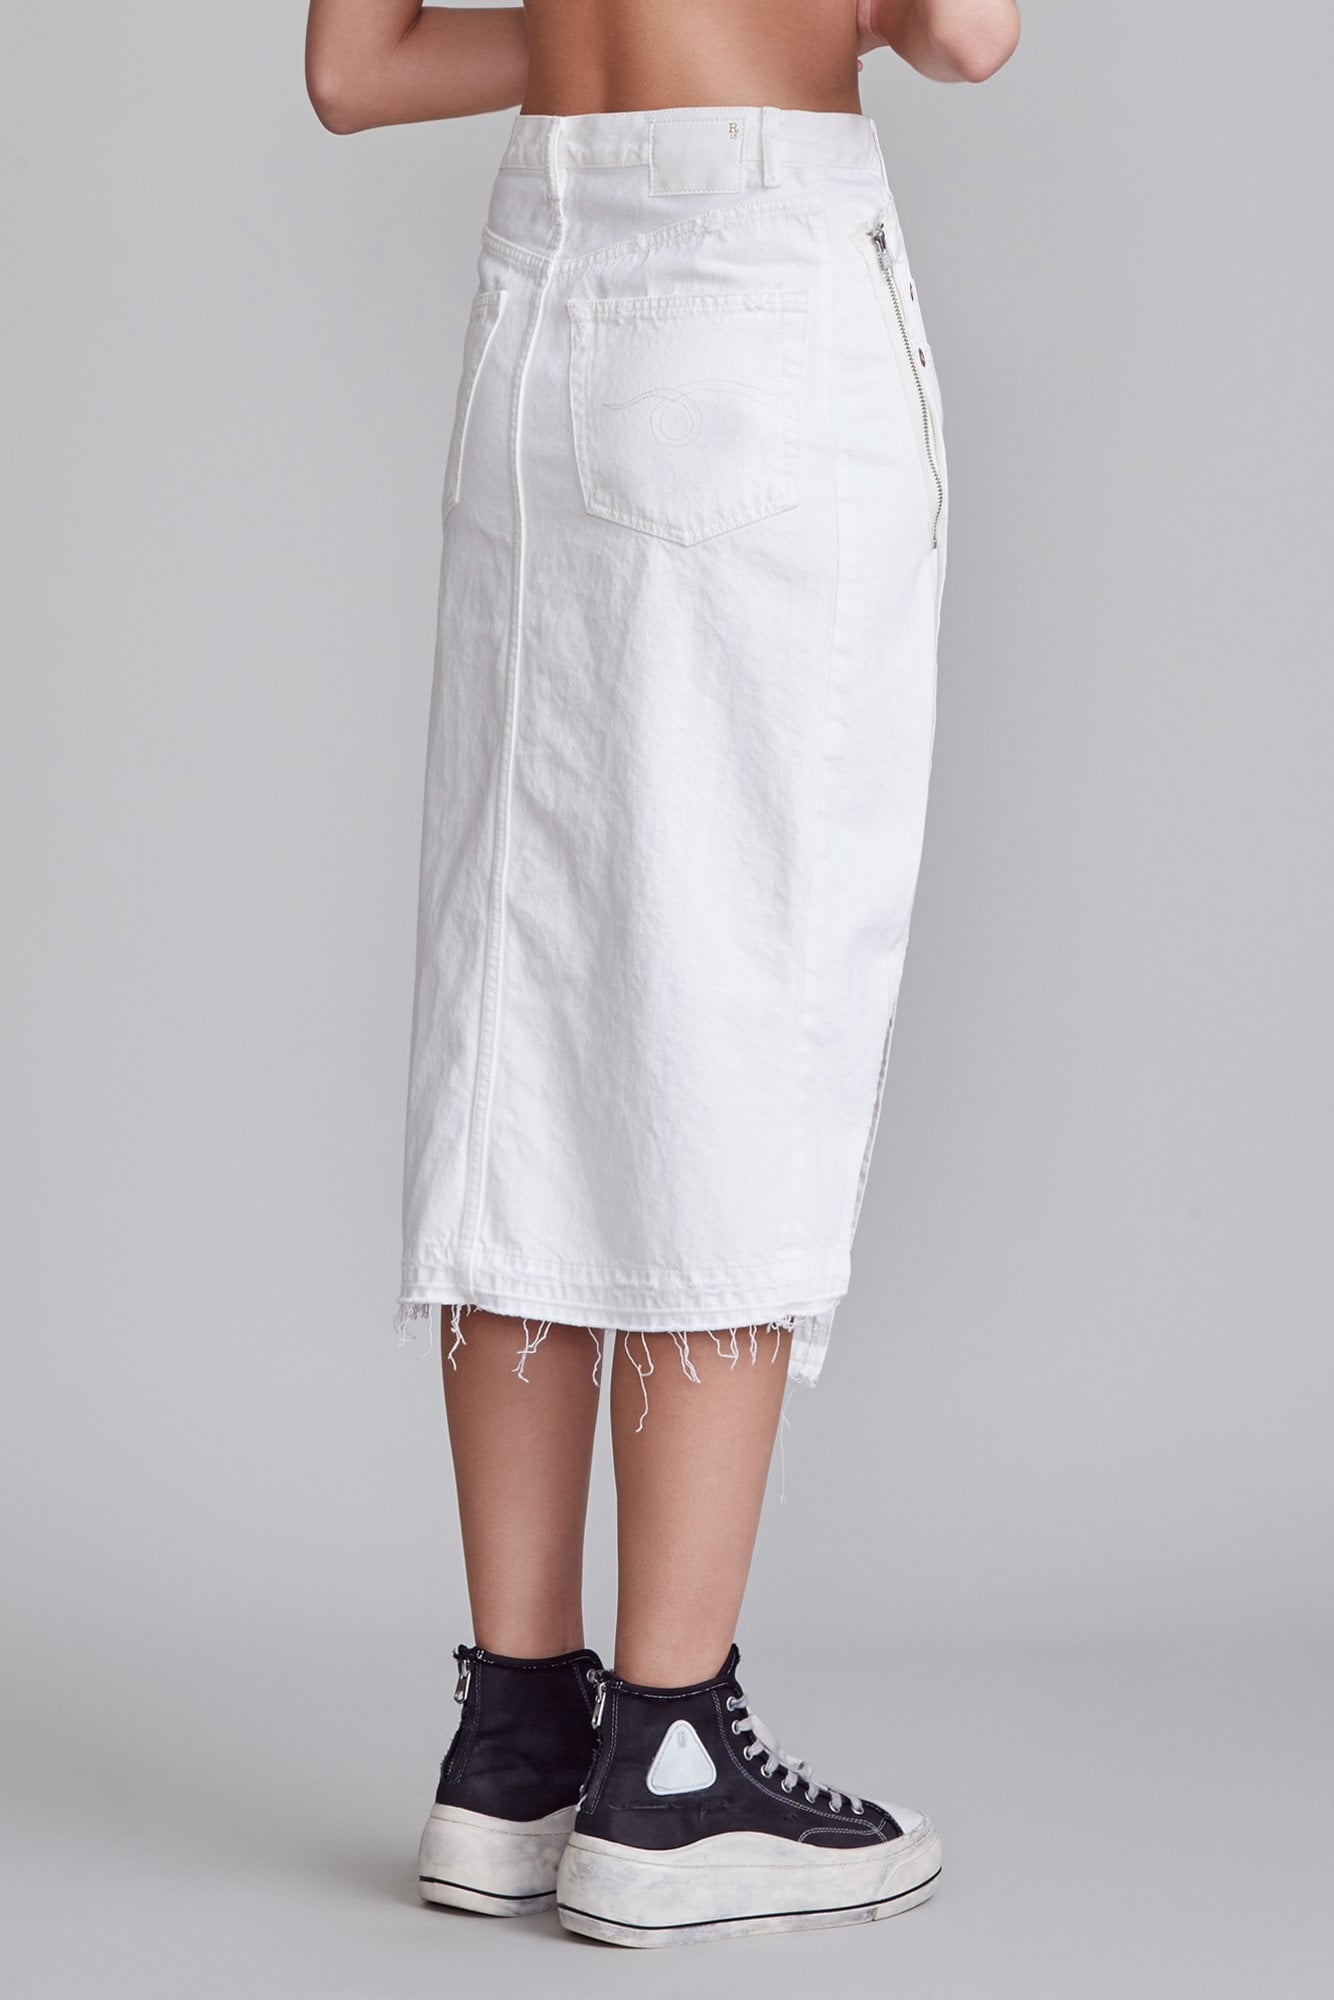 Lita Skirt - Nico White